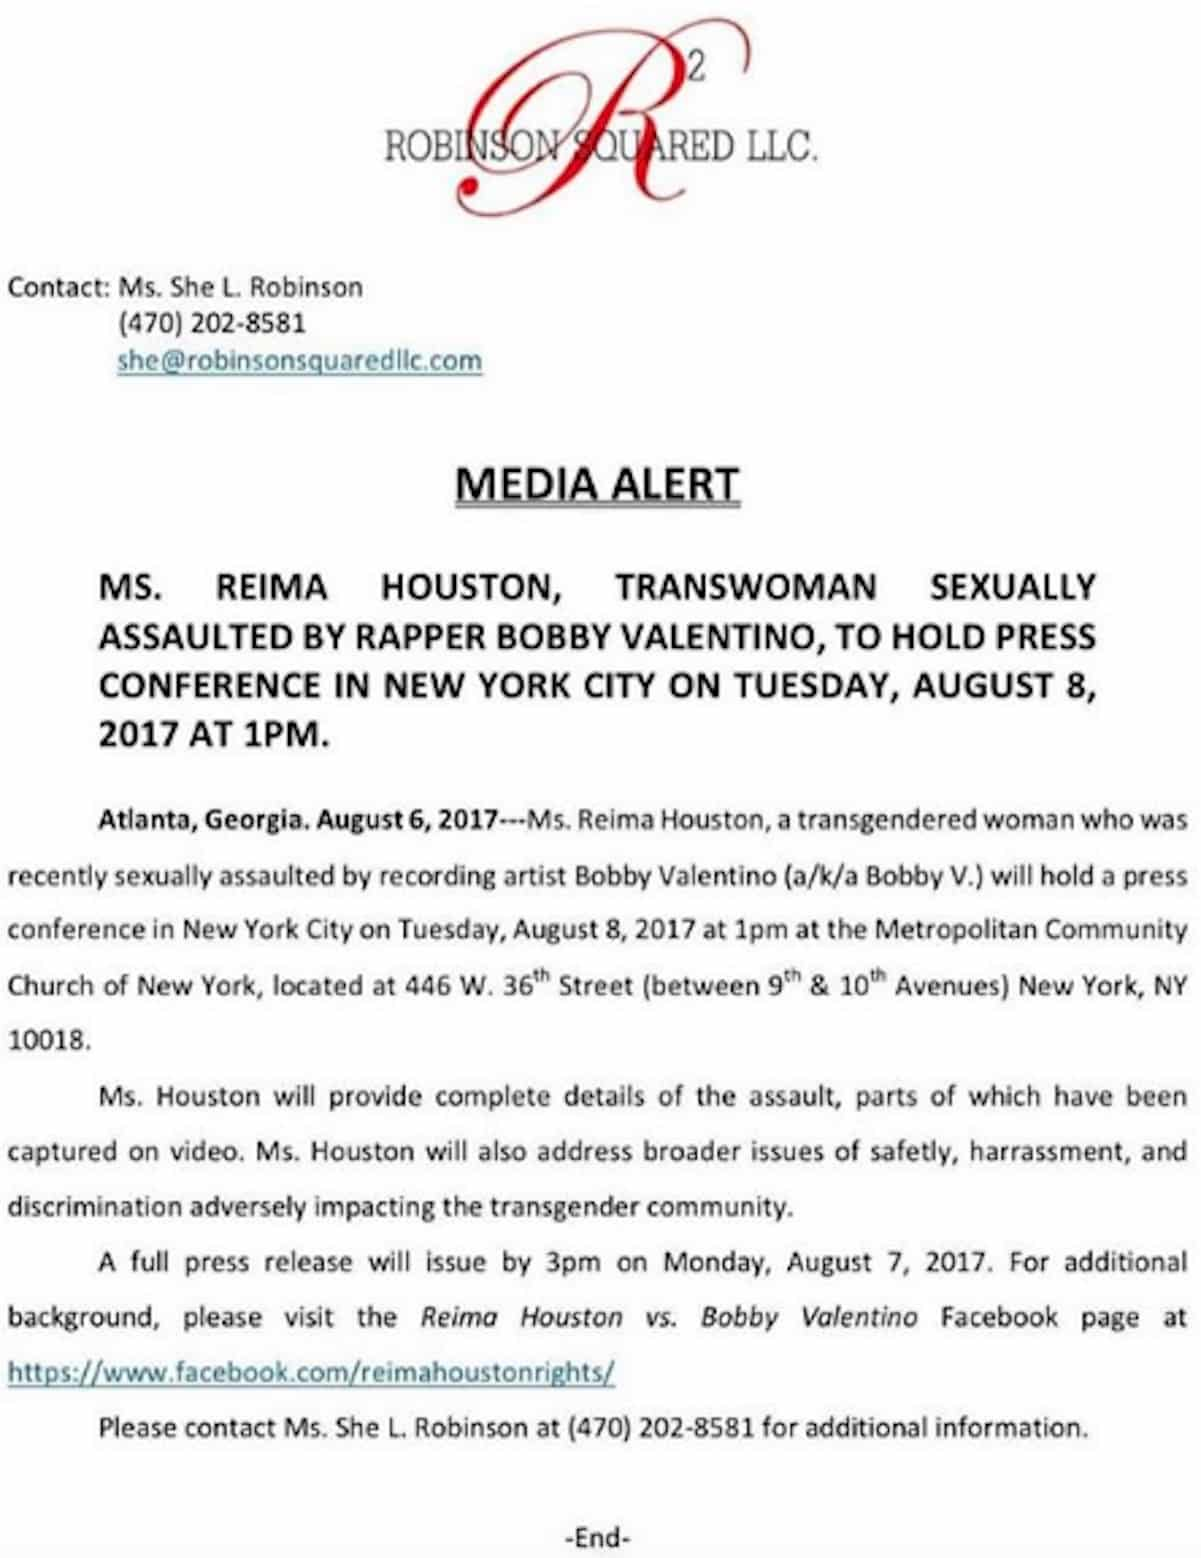 bobby v trans escort news conference